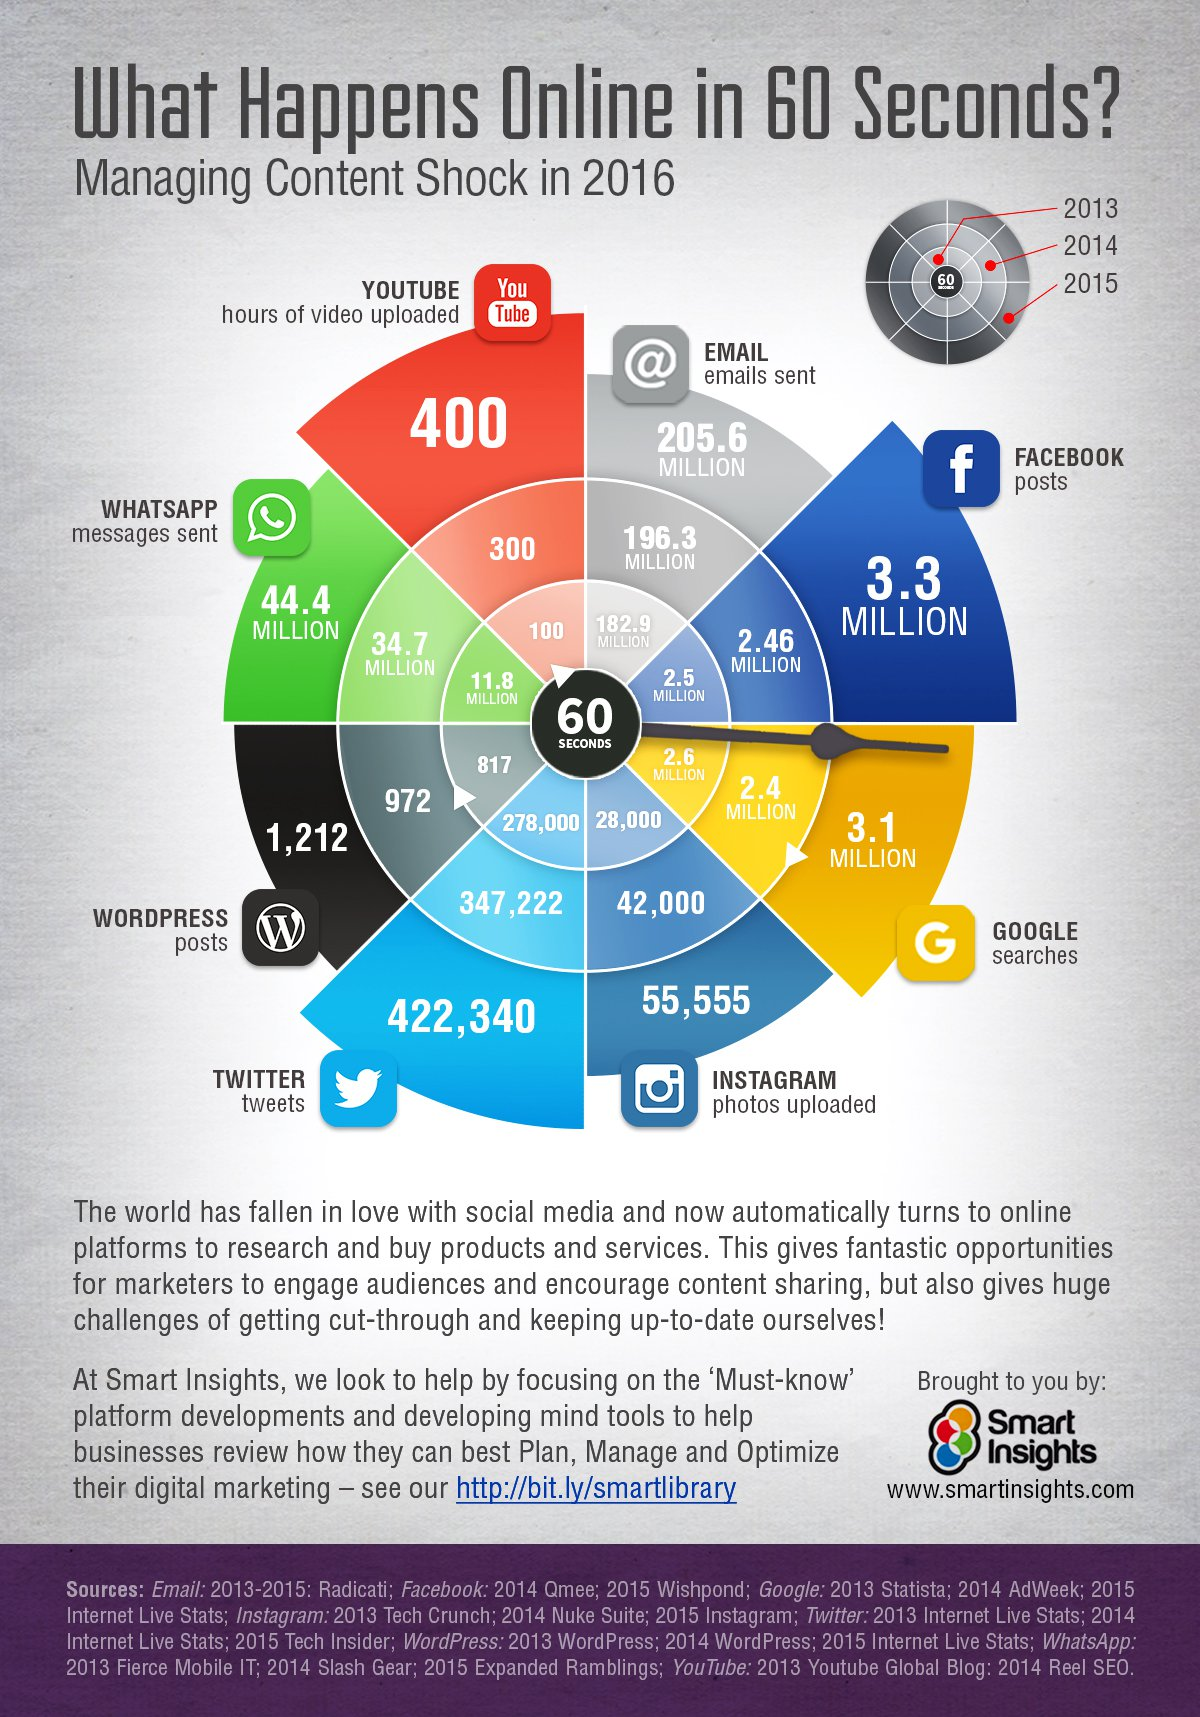 What-happens-online-in-60-seconds-one-minute.jpg